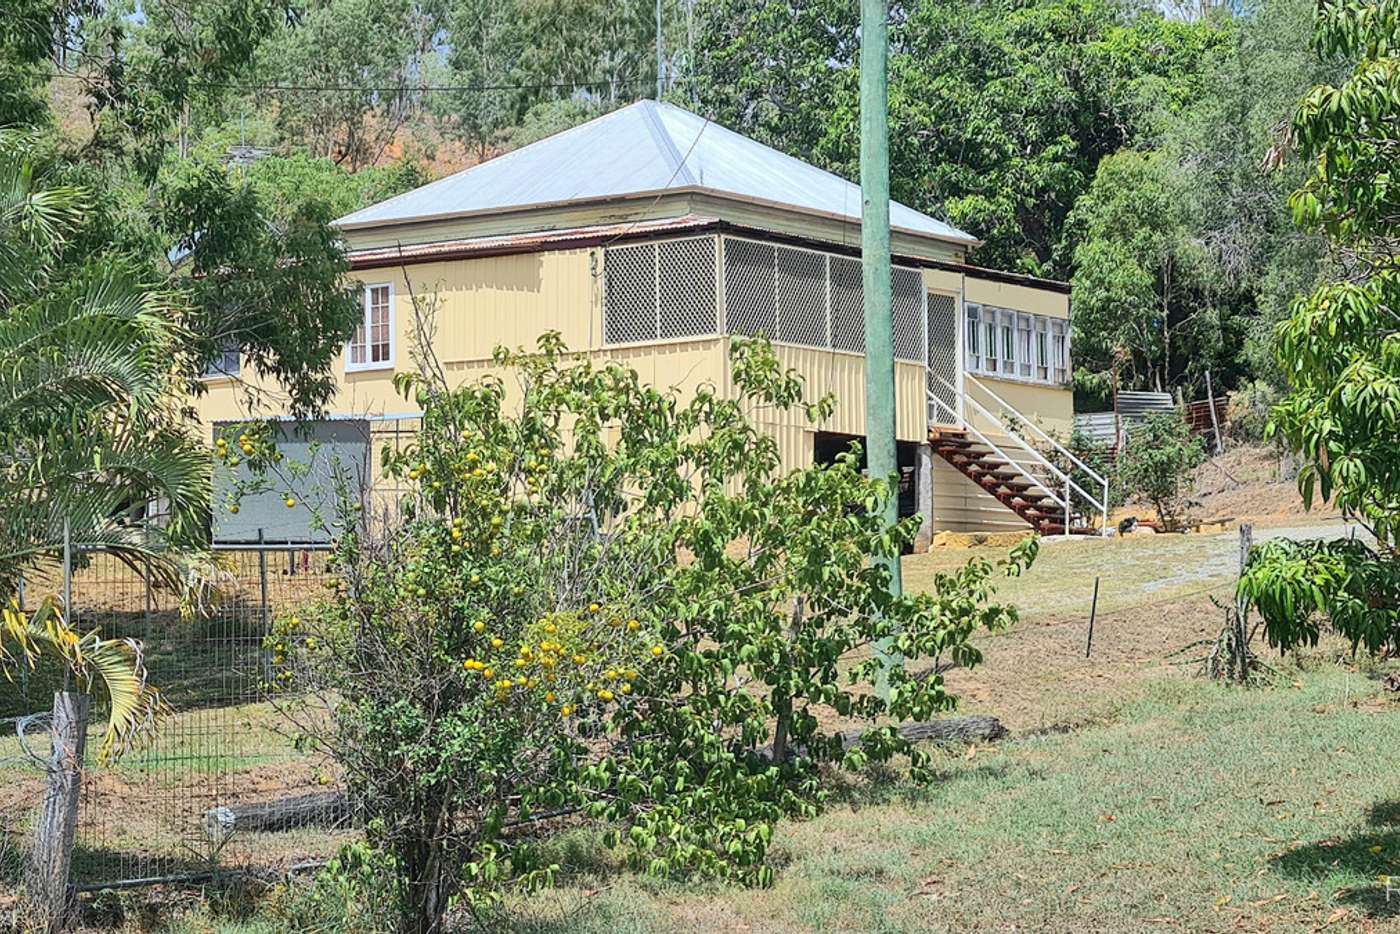 Main view of Homely house listing, 10 Lukin Street, Mount Morgan QLD 4714